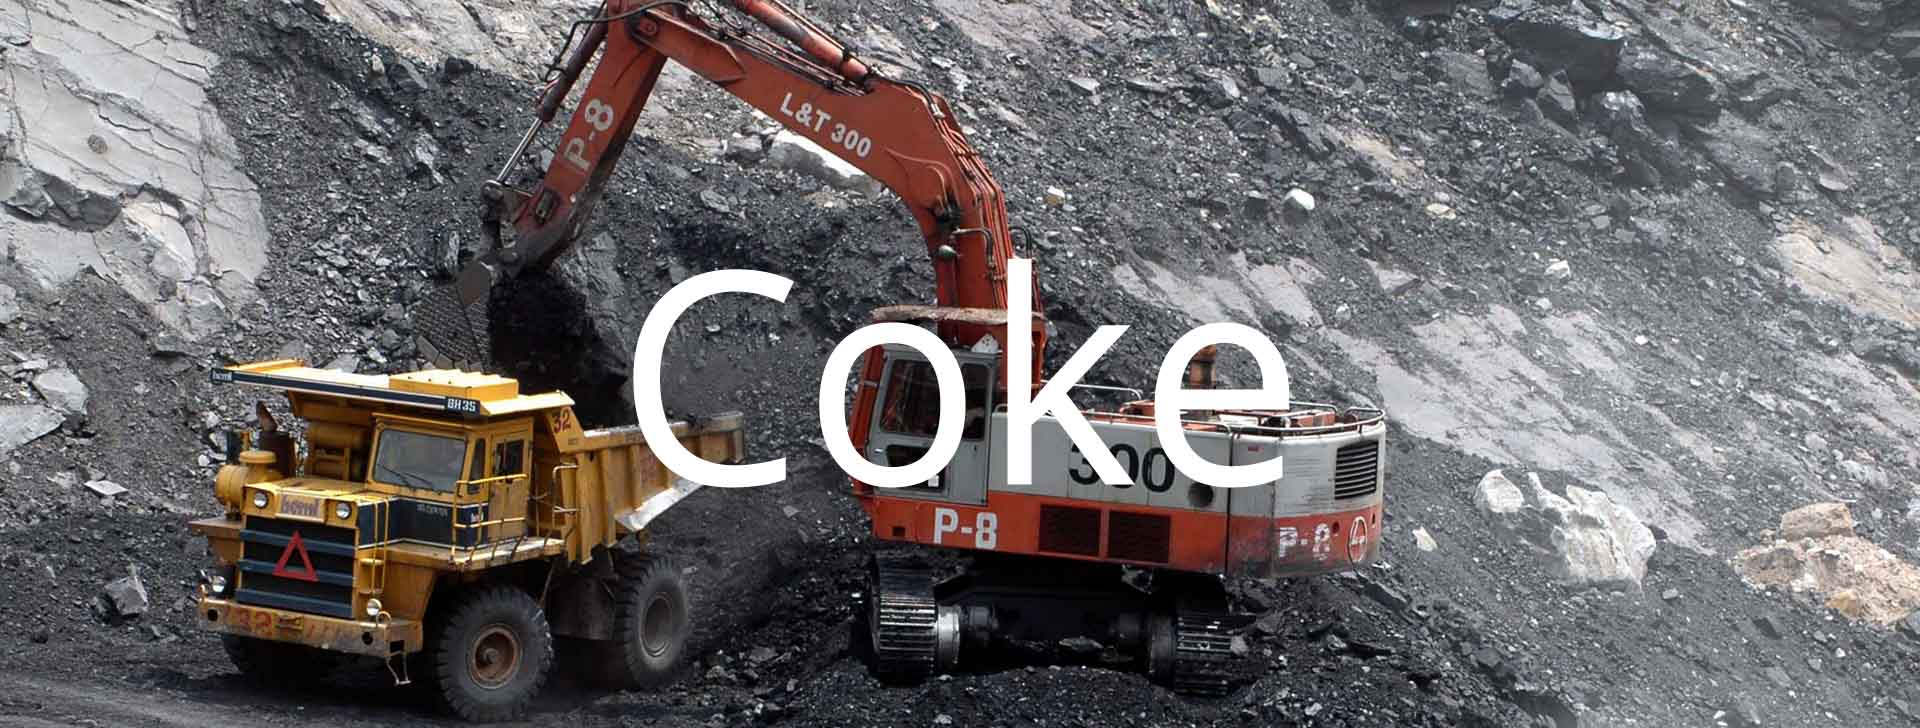 Coke Featured Image